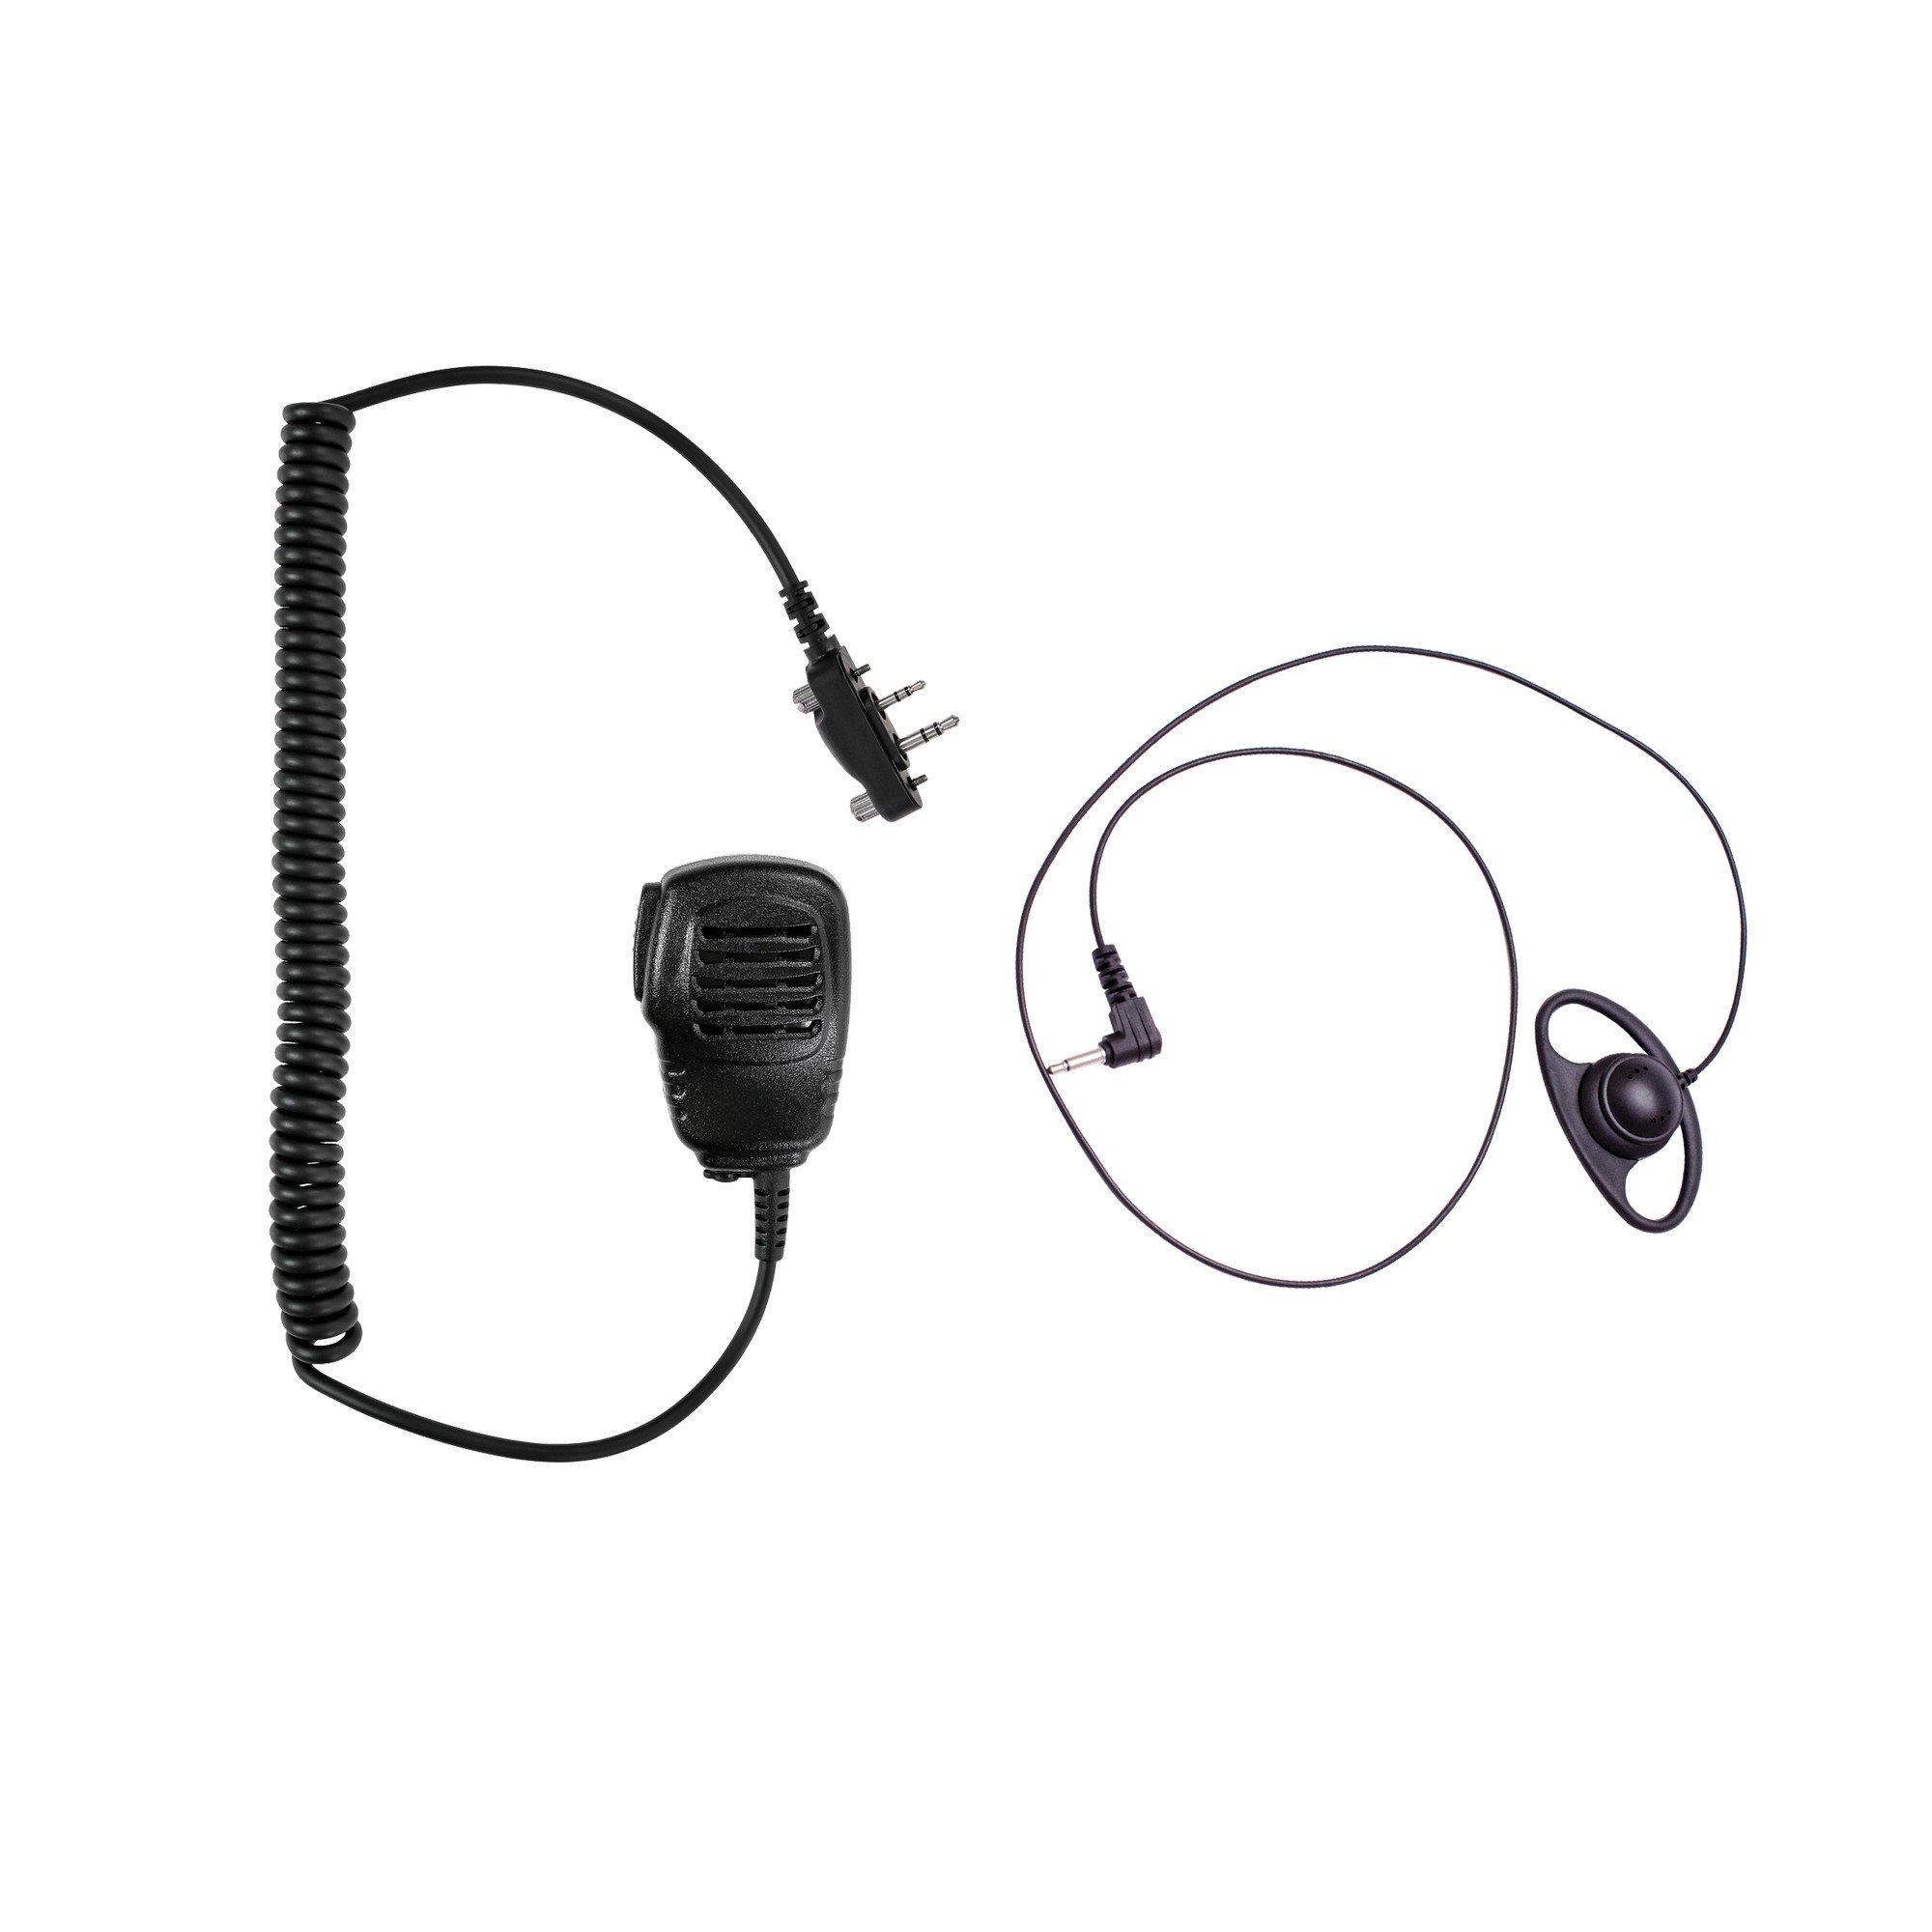 Maxtop APM100ARP07-I2 Light Duty Shoulder Speaker Microphone + D-Shape Listen Only Earpiece for ICOM